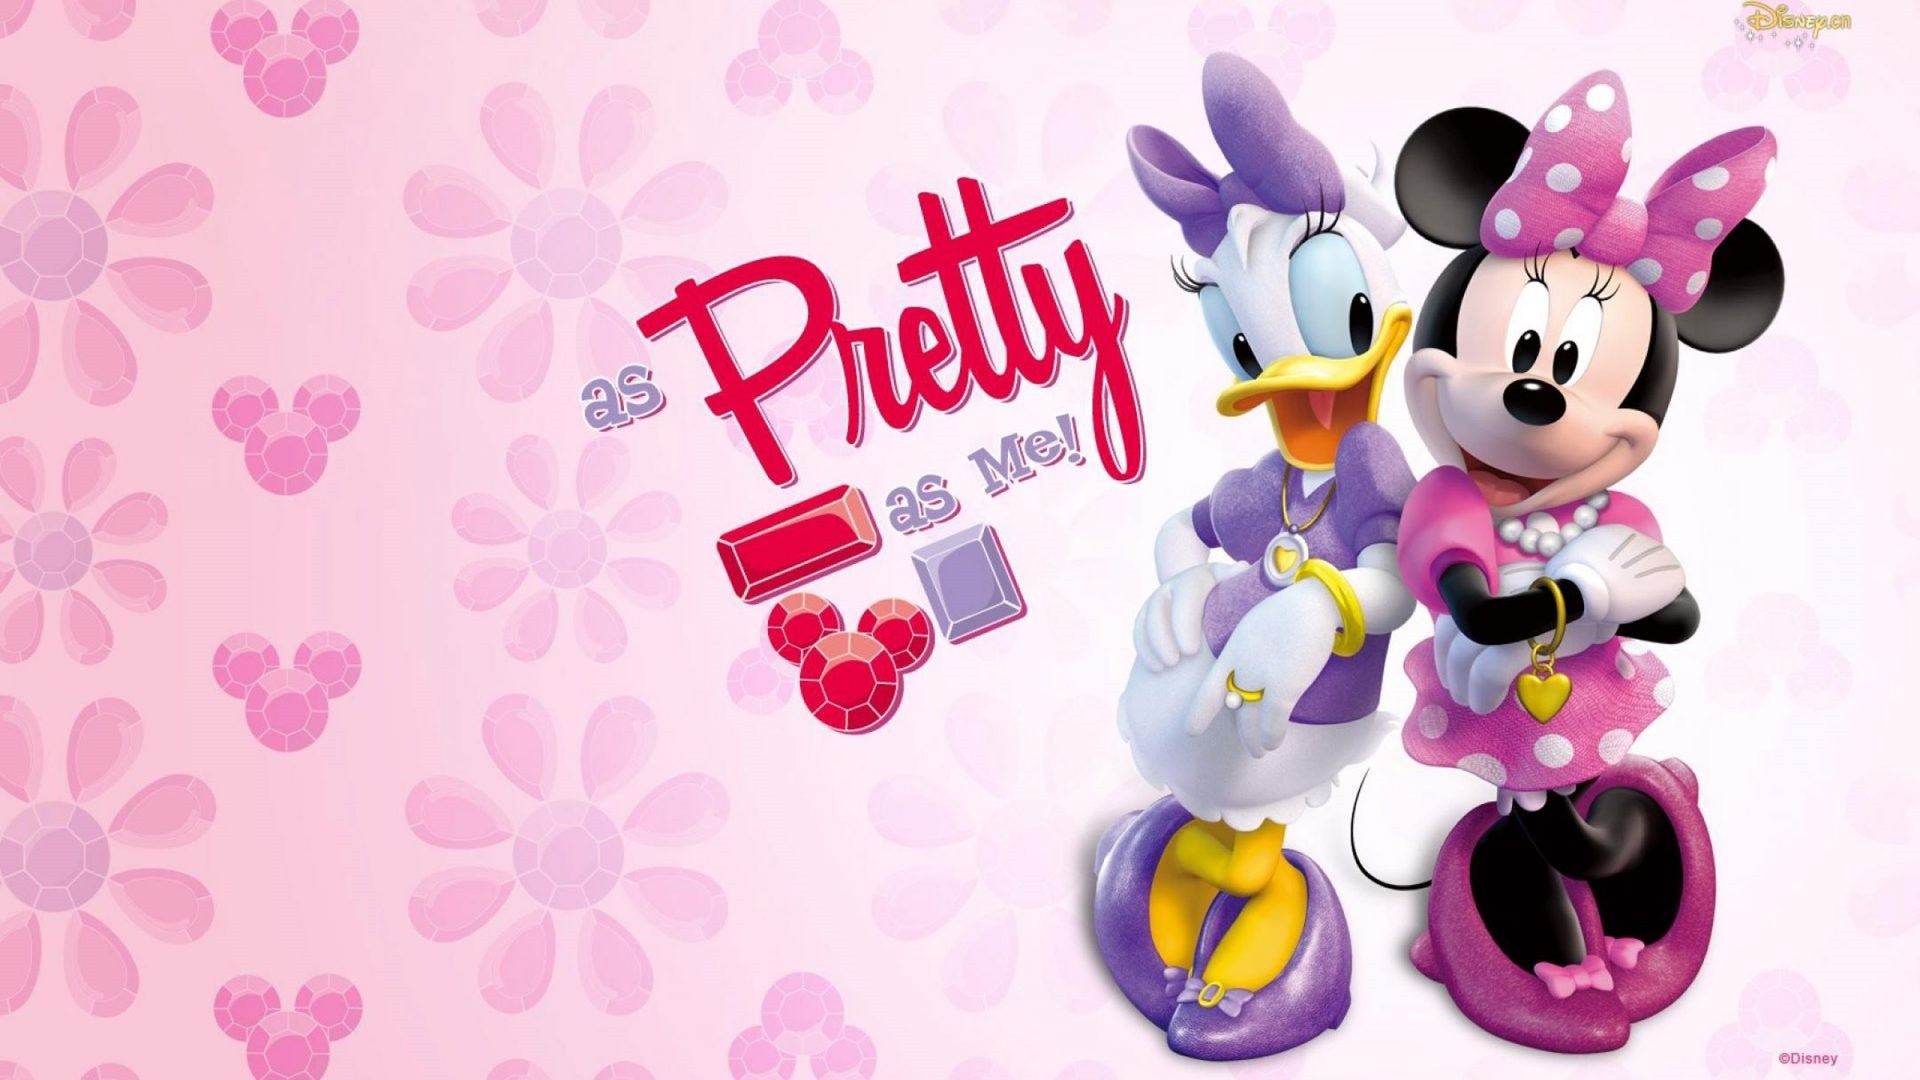 Minnie Mouse Wallpaper theme